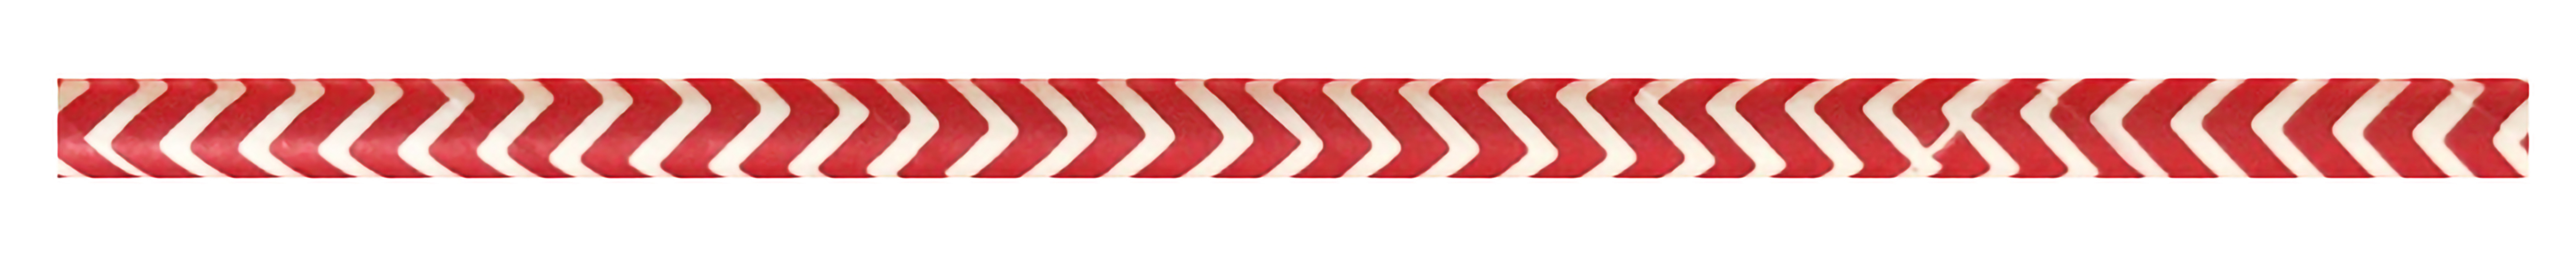 Durable Red & White Chevron Design Paper Straws - 7.75  Inches